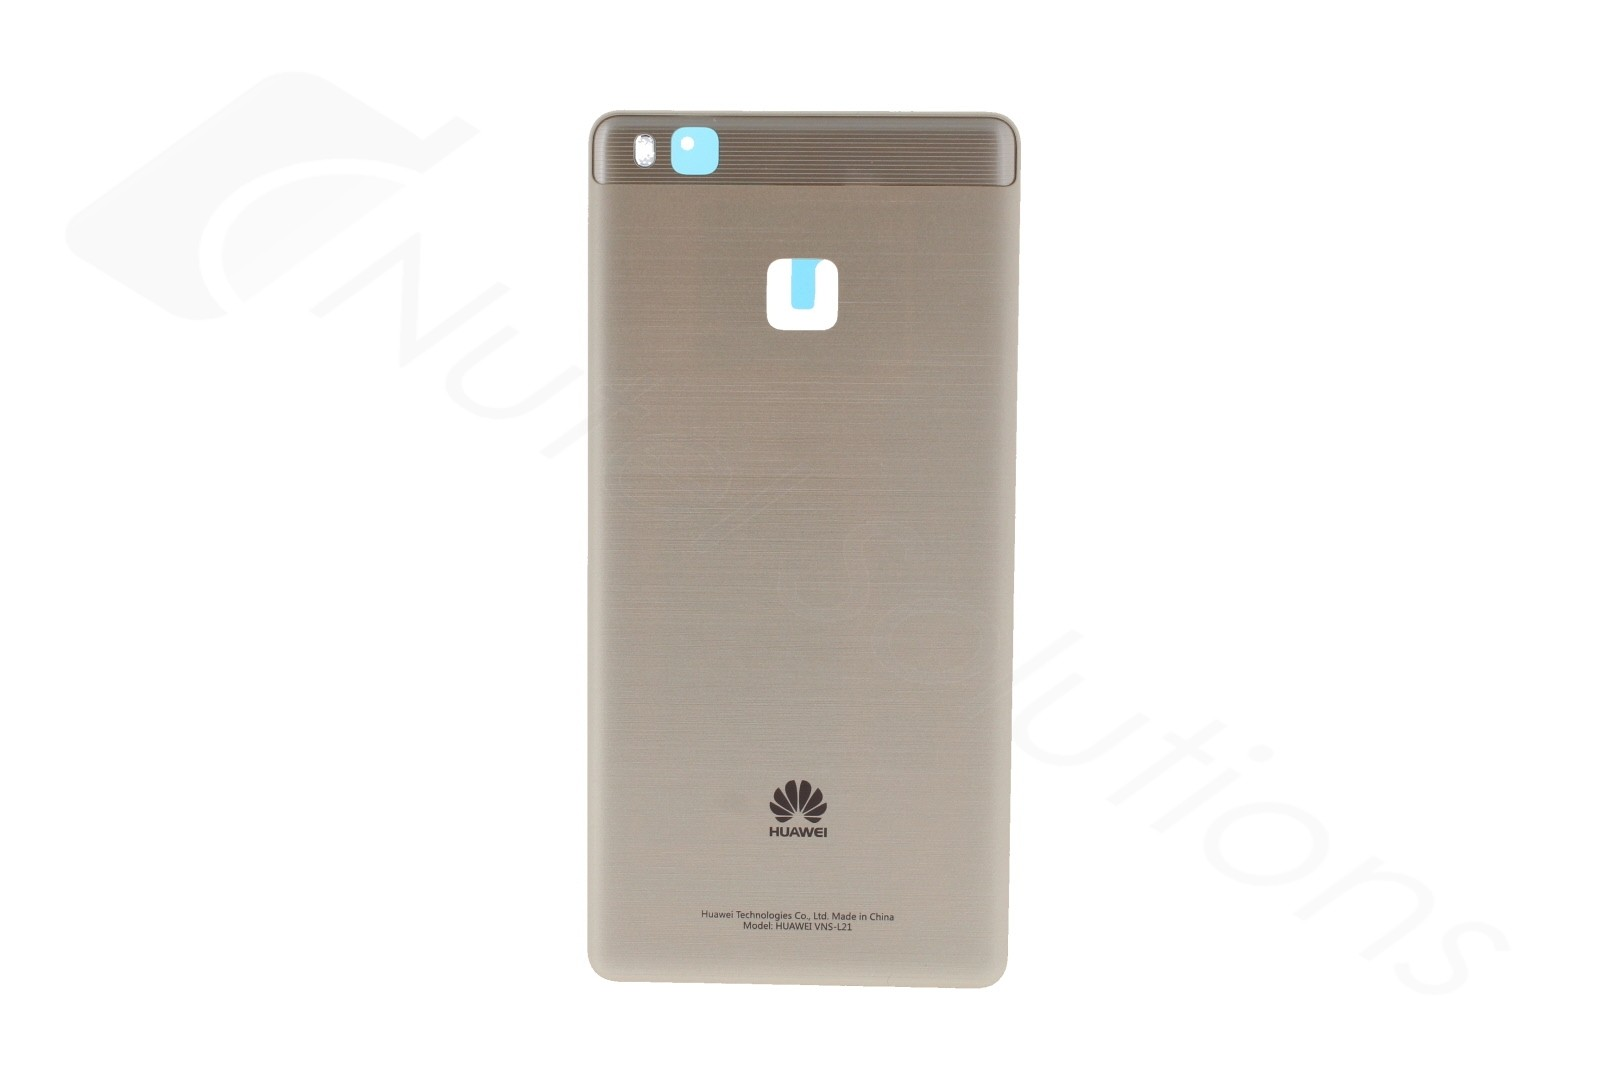 Genuine Huawei P9 Lite VNS-L31 Gold Battery Cover with NFC